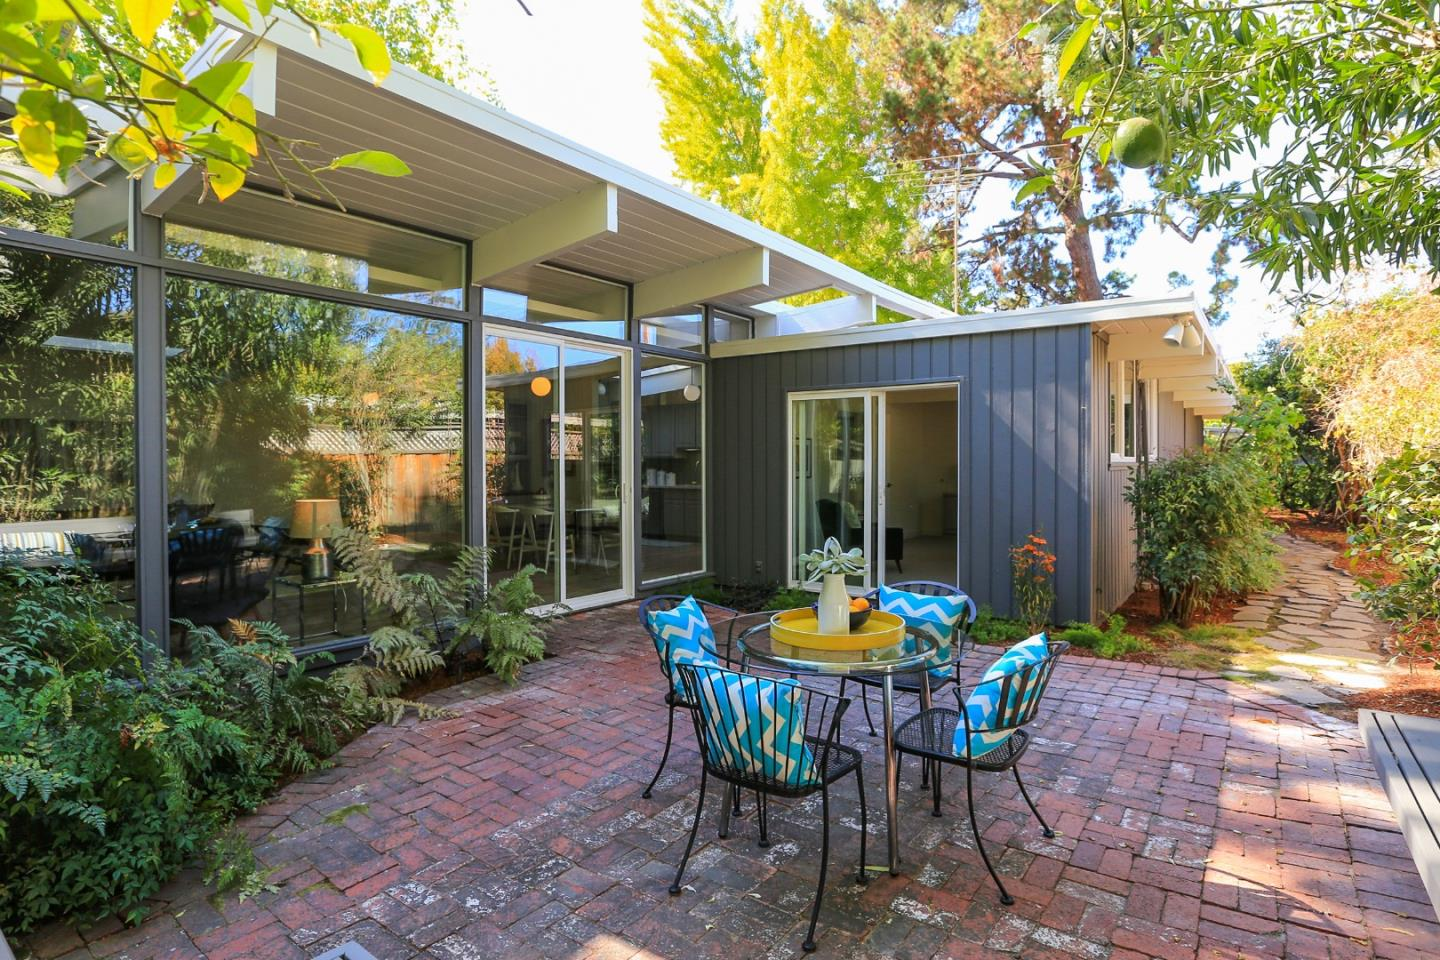 Sold 355 Parkside Dr Palo Alto 94306 Eichler Homes Realty